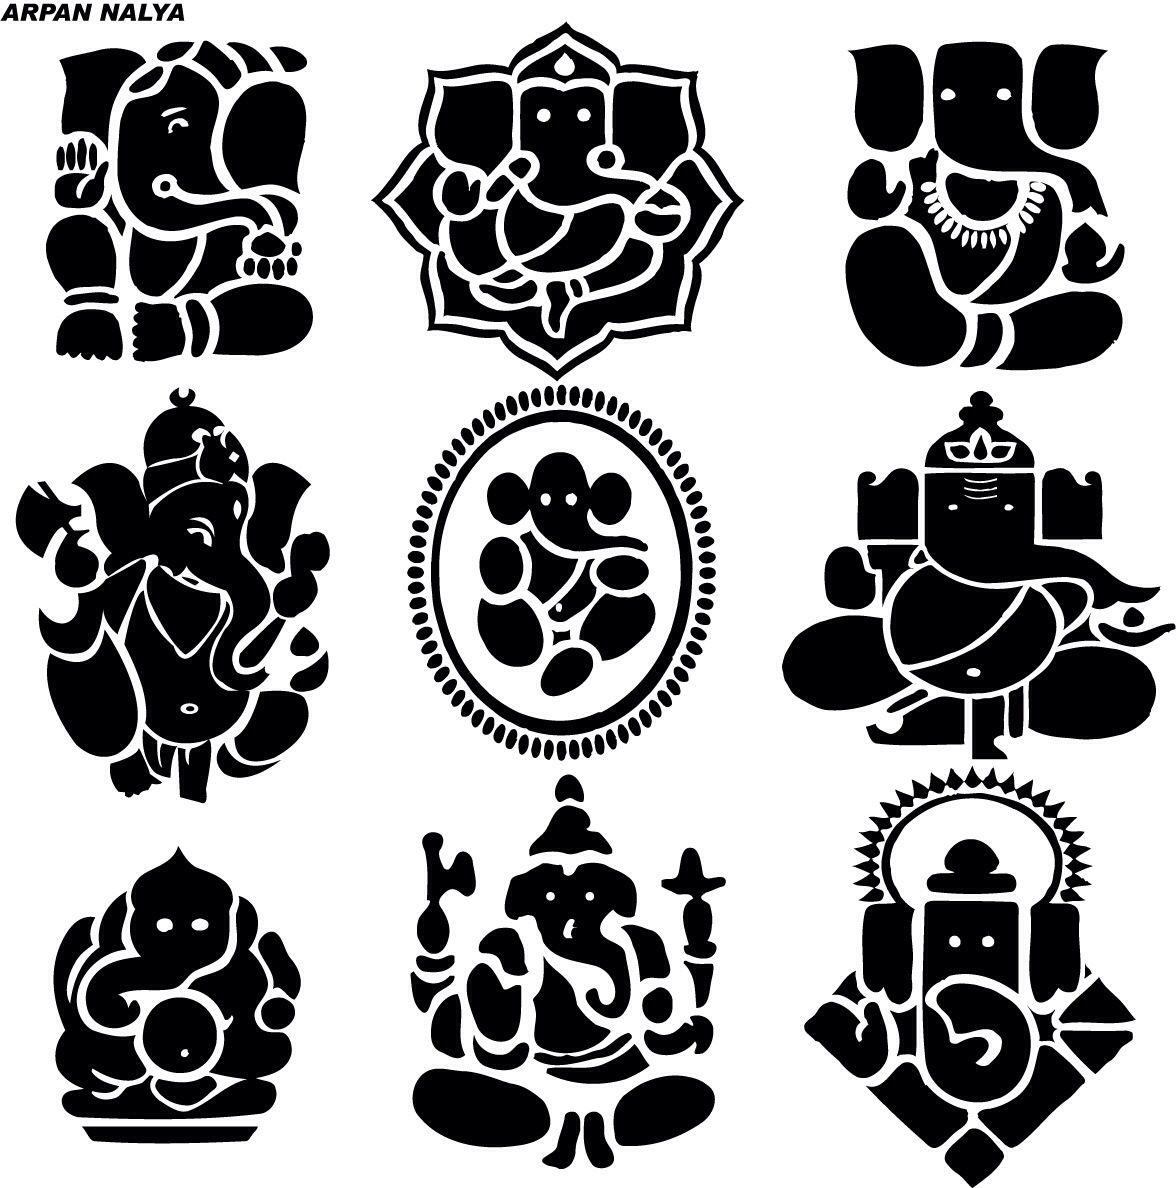 11 ganesha tattoo designs ideas and samples - Ganesh In The Lotus